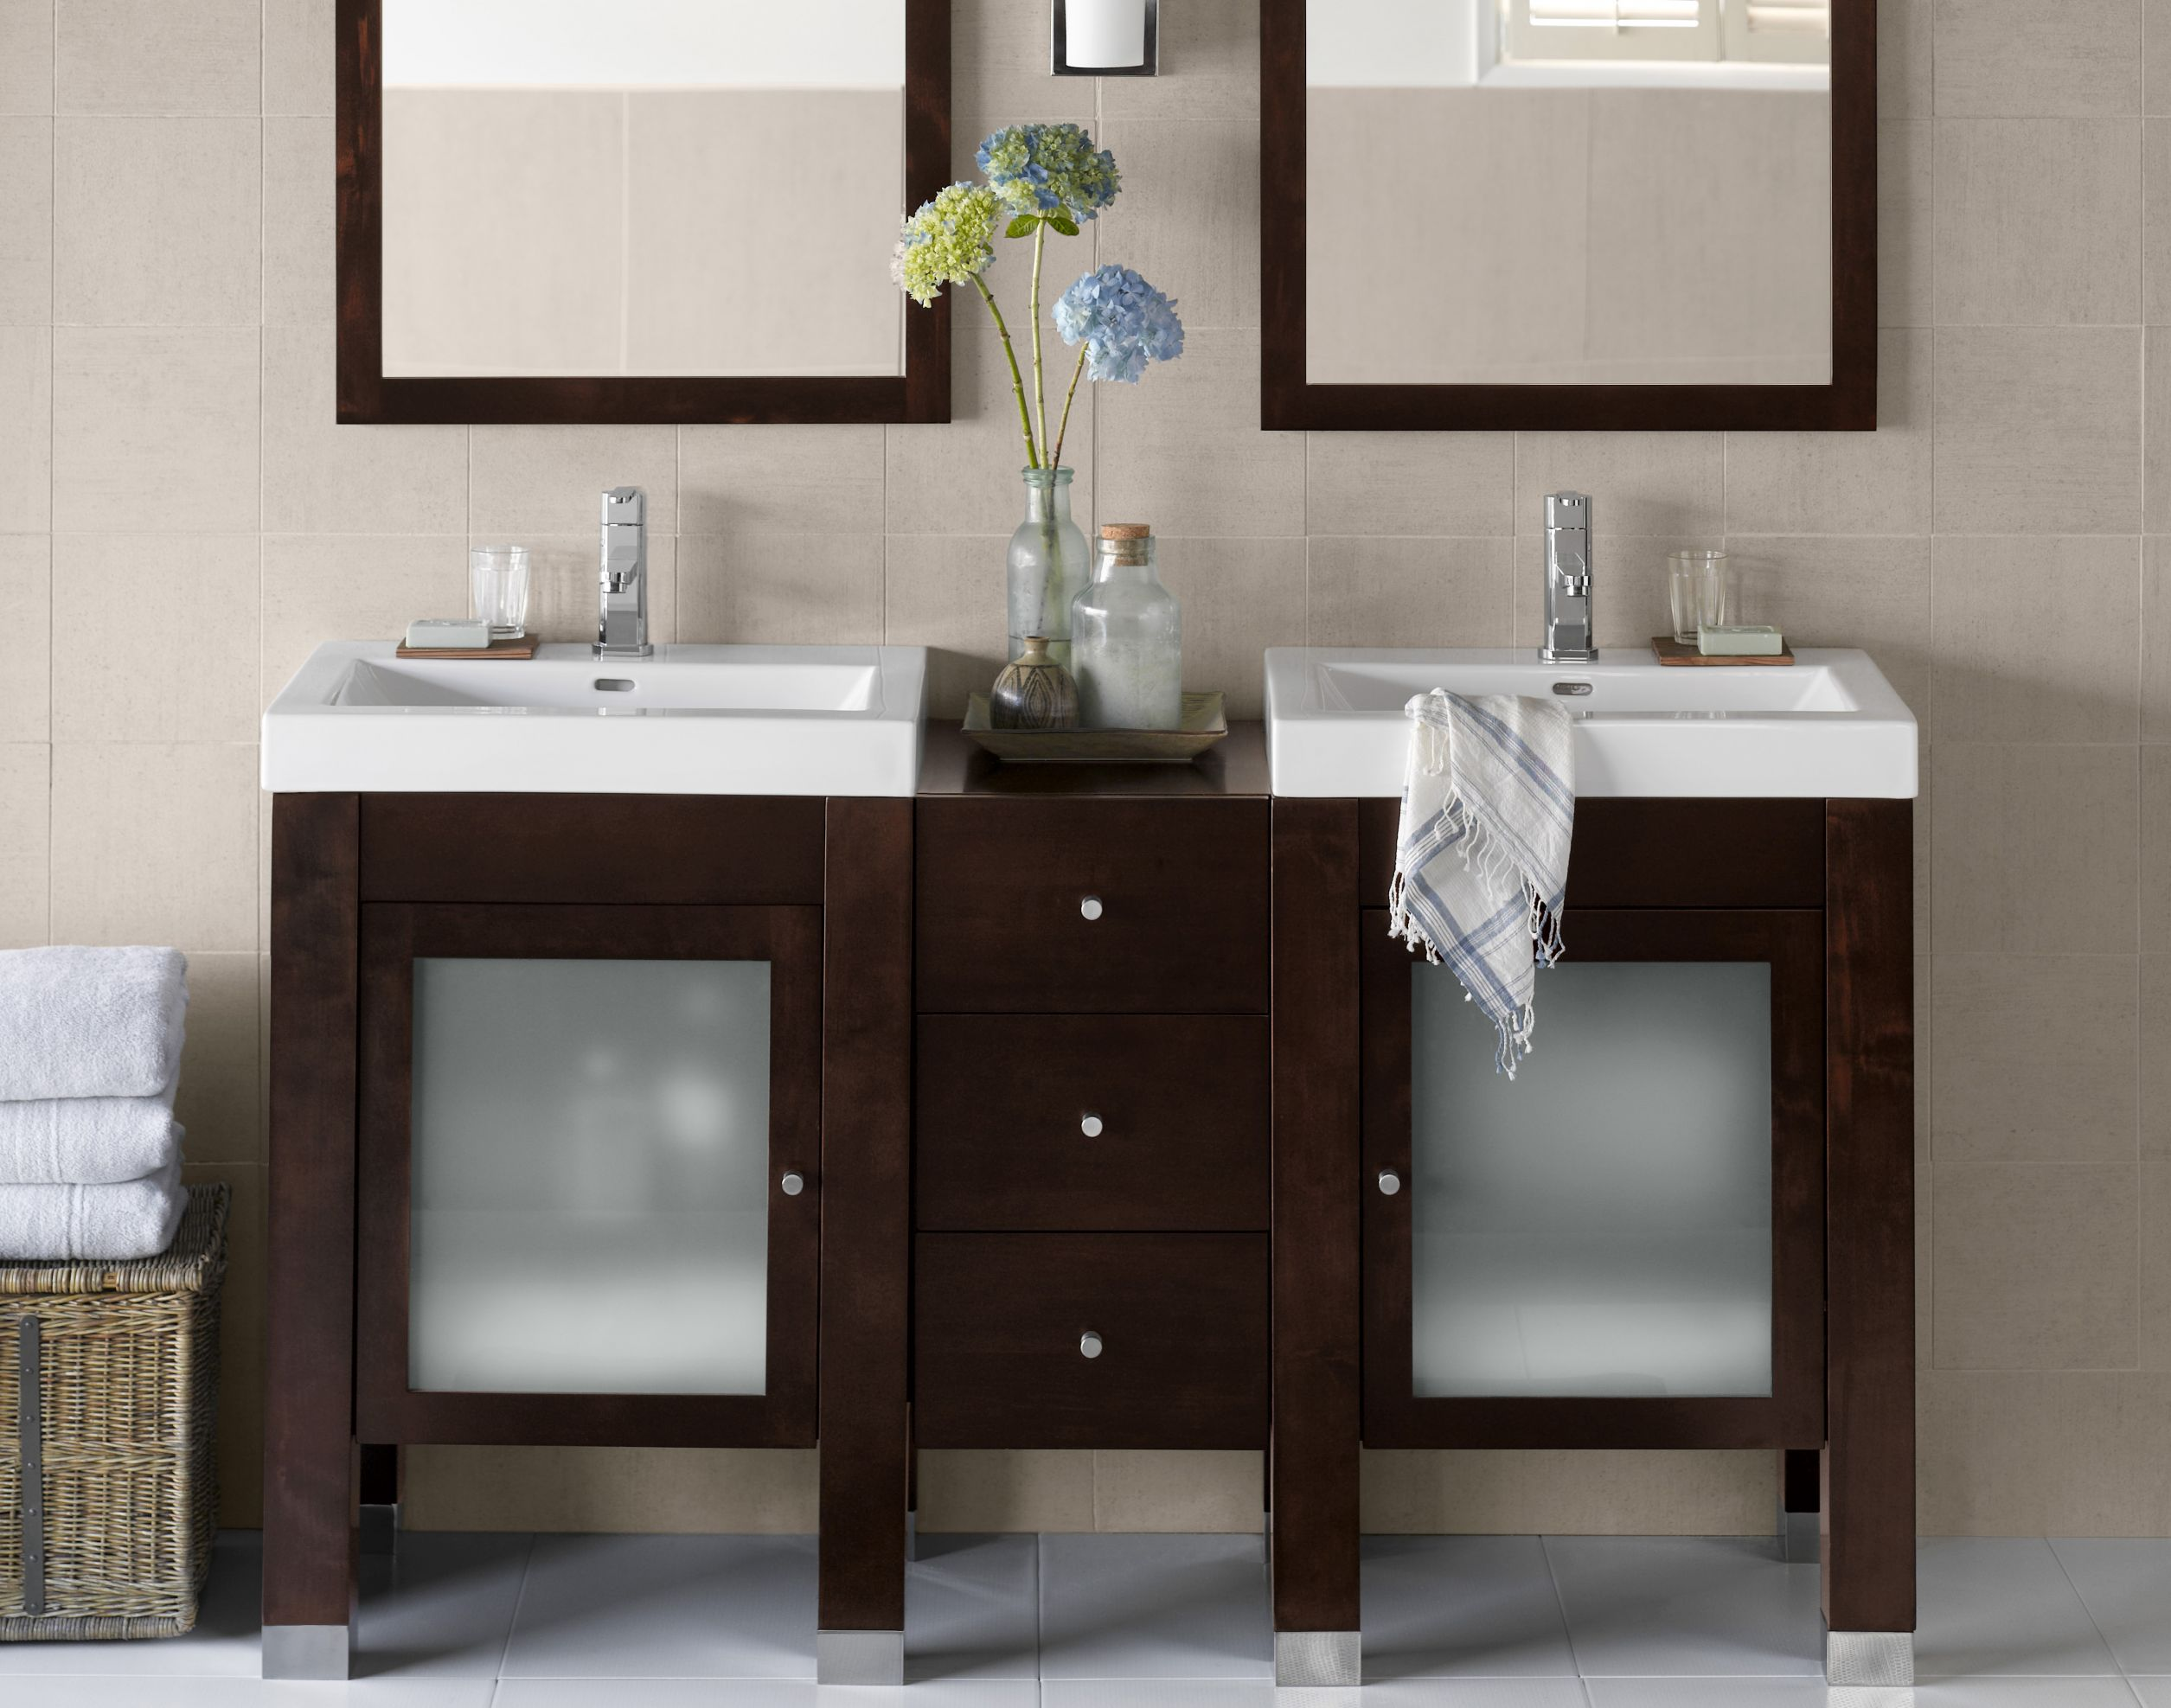 Bathroom Cabinets Knoxville Tn kitchen and bath blab | modern supply's kitchen, bath & lighting